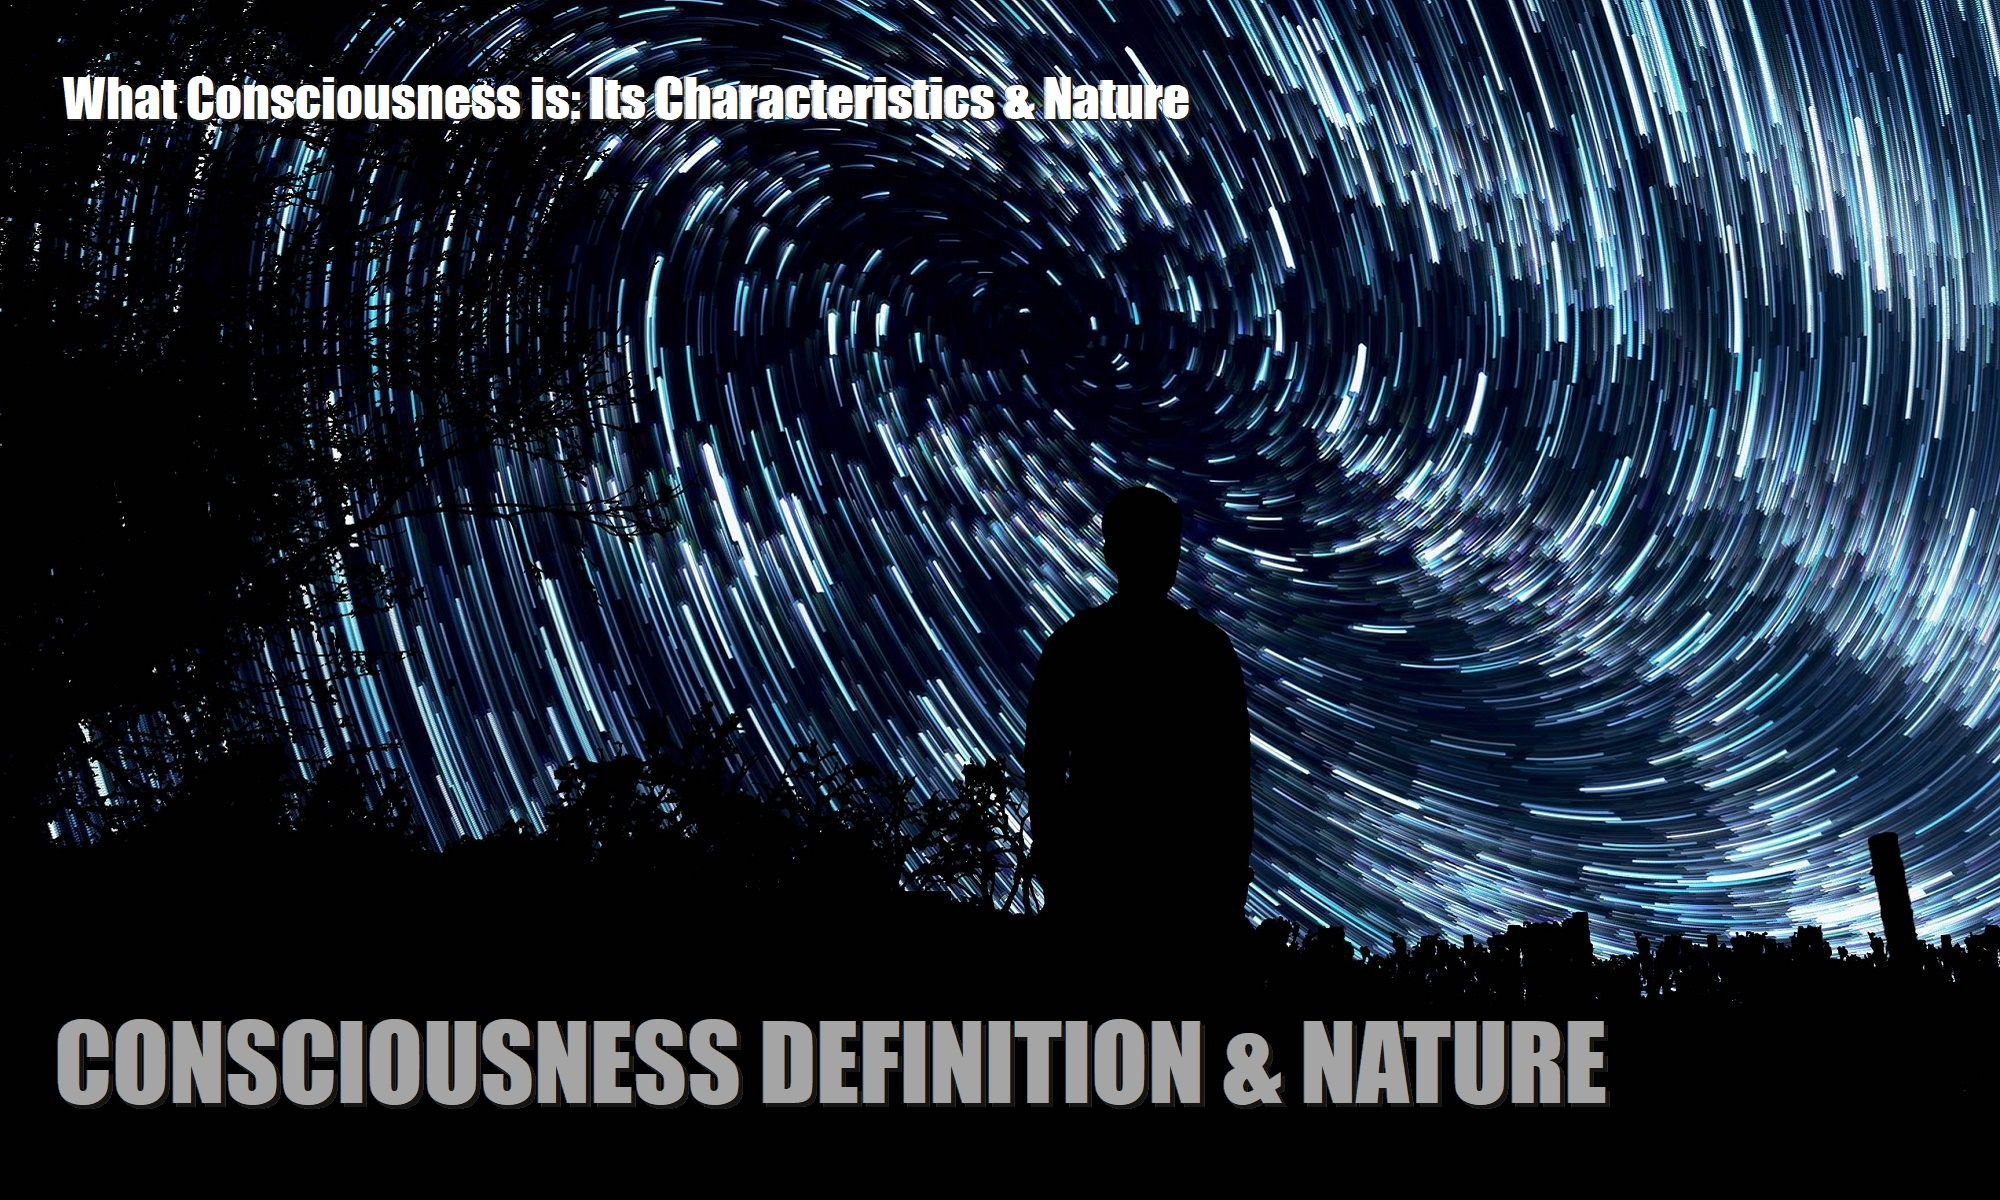 consciousness-definition-description-what-consciousness-is-its-characteristics-nature-of-and-for-you